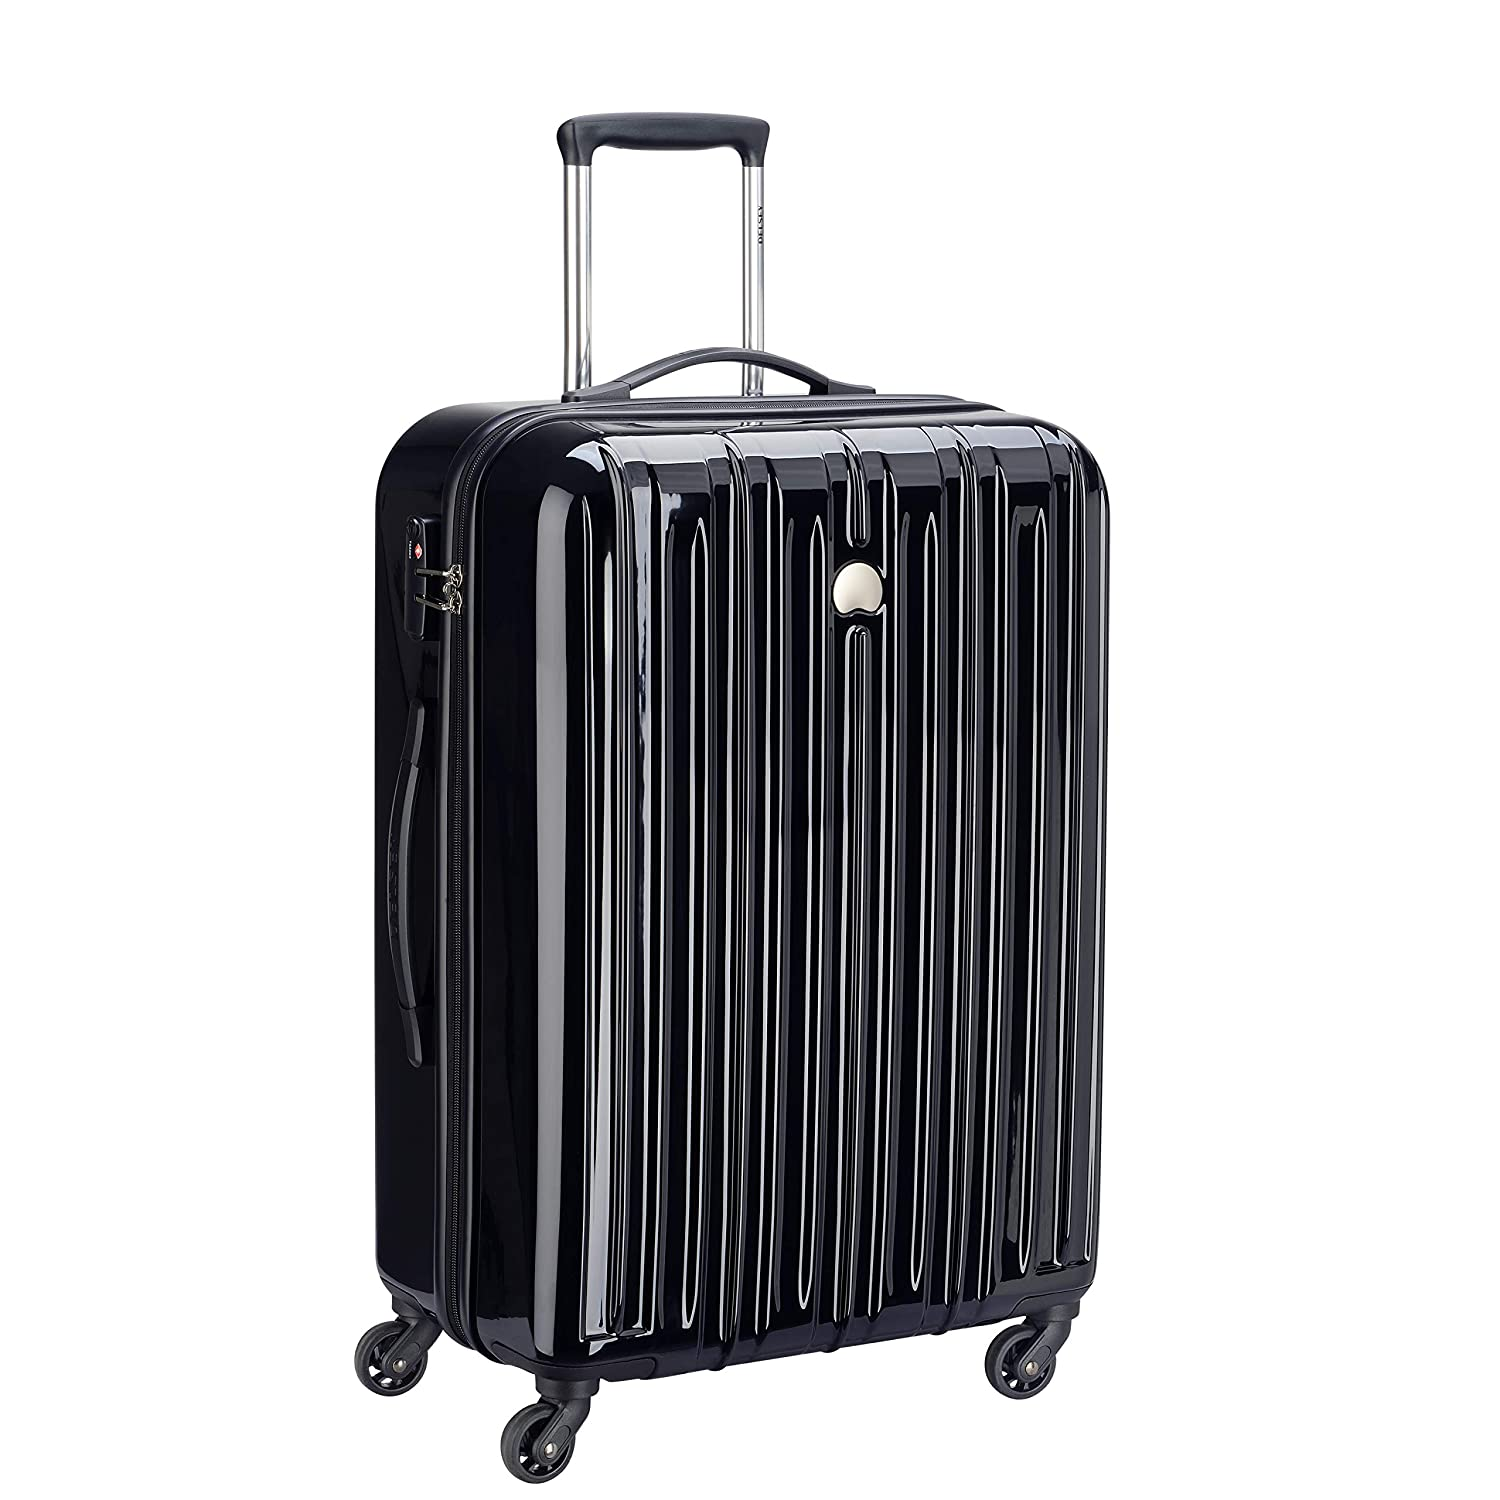 Delsey ABS 59.5 cms Black Hardsided Carry On (Air Longitude 2)